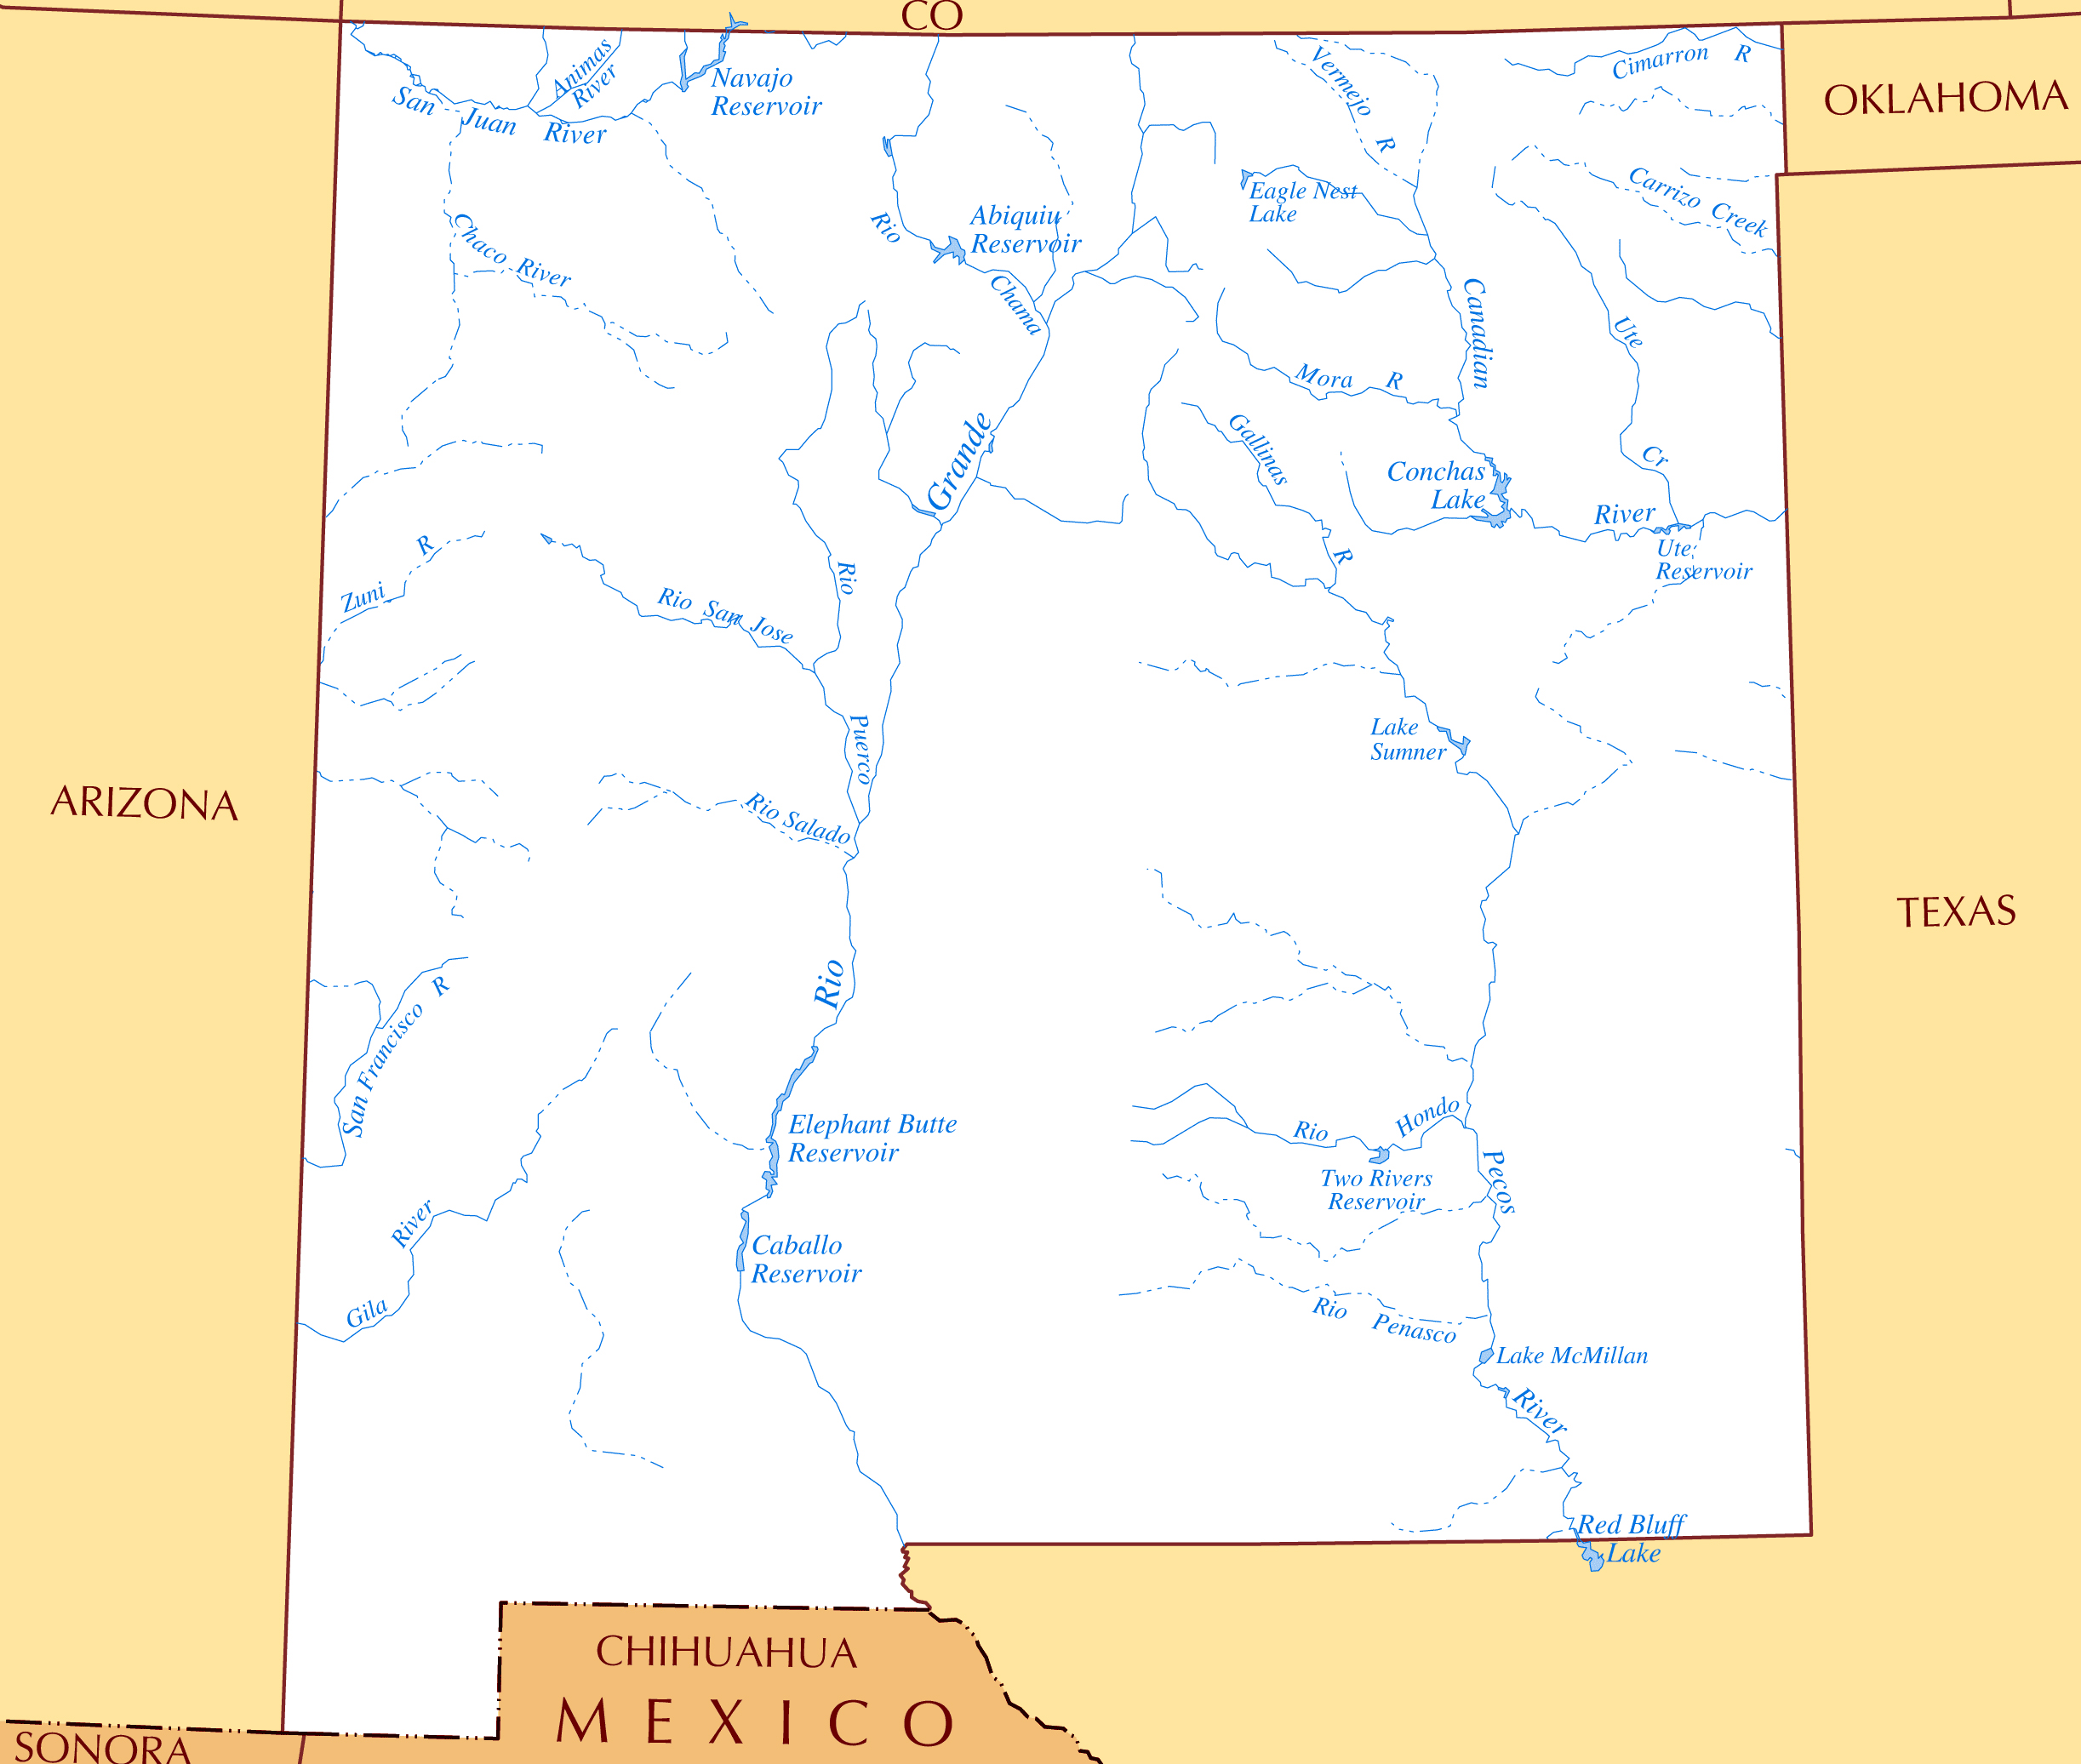 Rivers In New Mexico Map.Large Rivers And Lakes Map Of New Mexico State Vidiani Com Maps